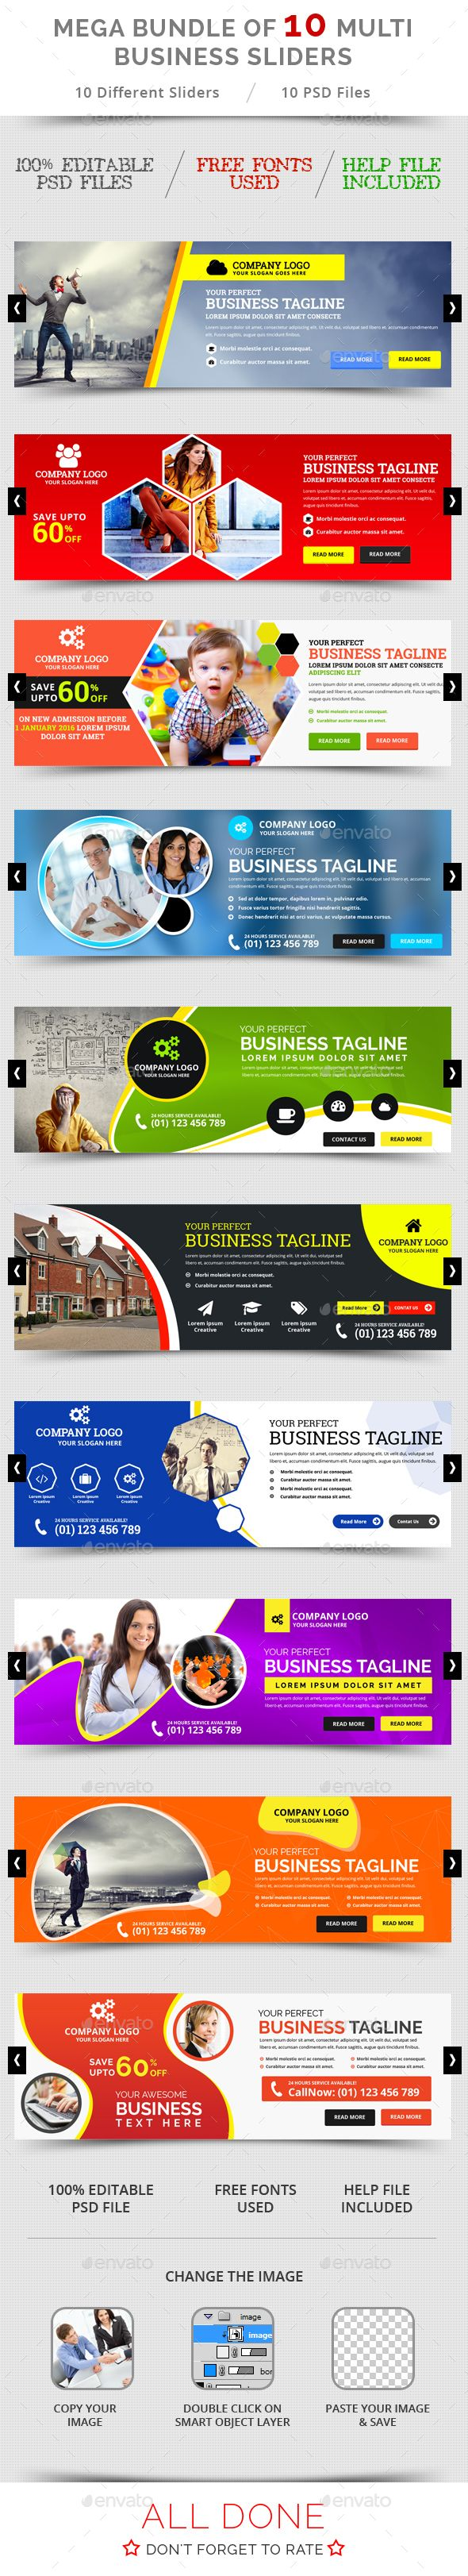 10 Multi Business Sliders Templates PSD Bundle. Download here…